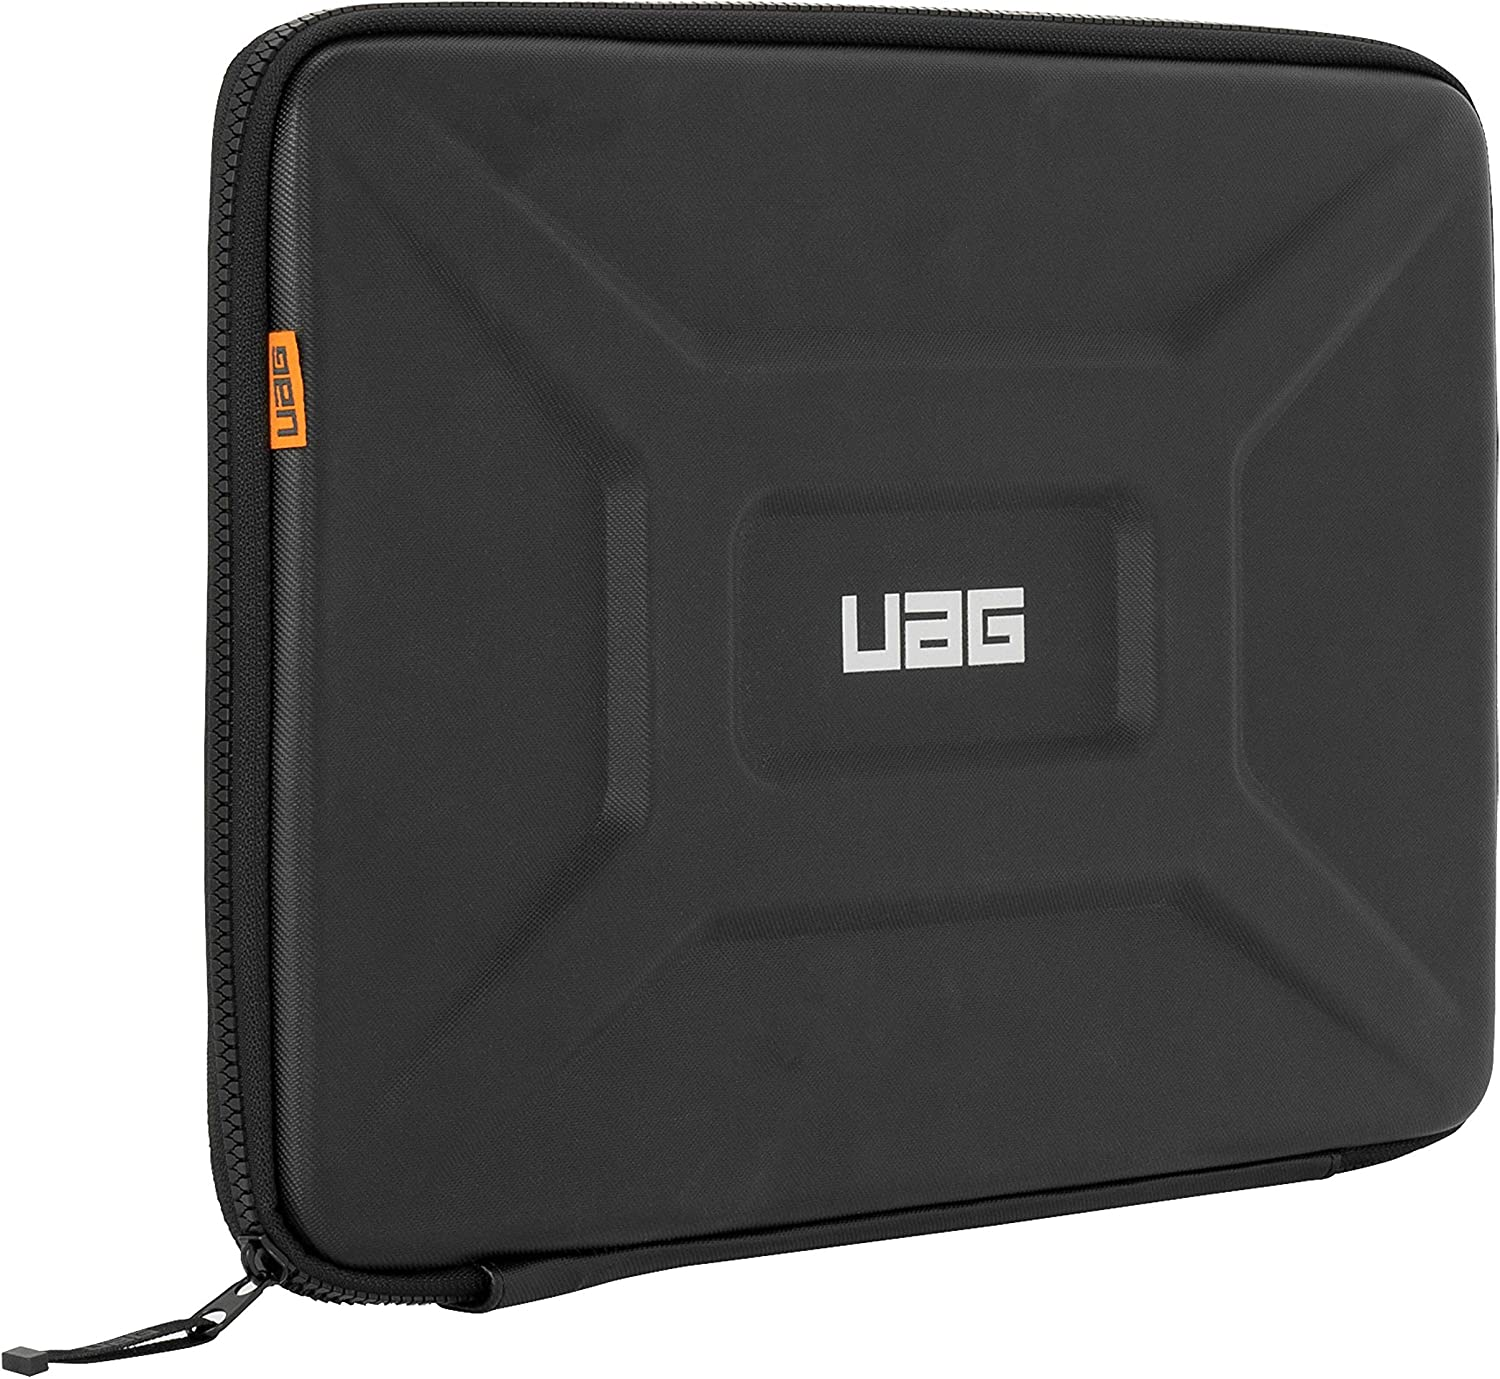 "URBAN ARMOR GEAR UAG Large Sleeve for 15"" Devices [Black] Rugged Tactile Grip Weatherproof Protective Slim Secure Laptop/Tablet Sleeve"